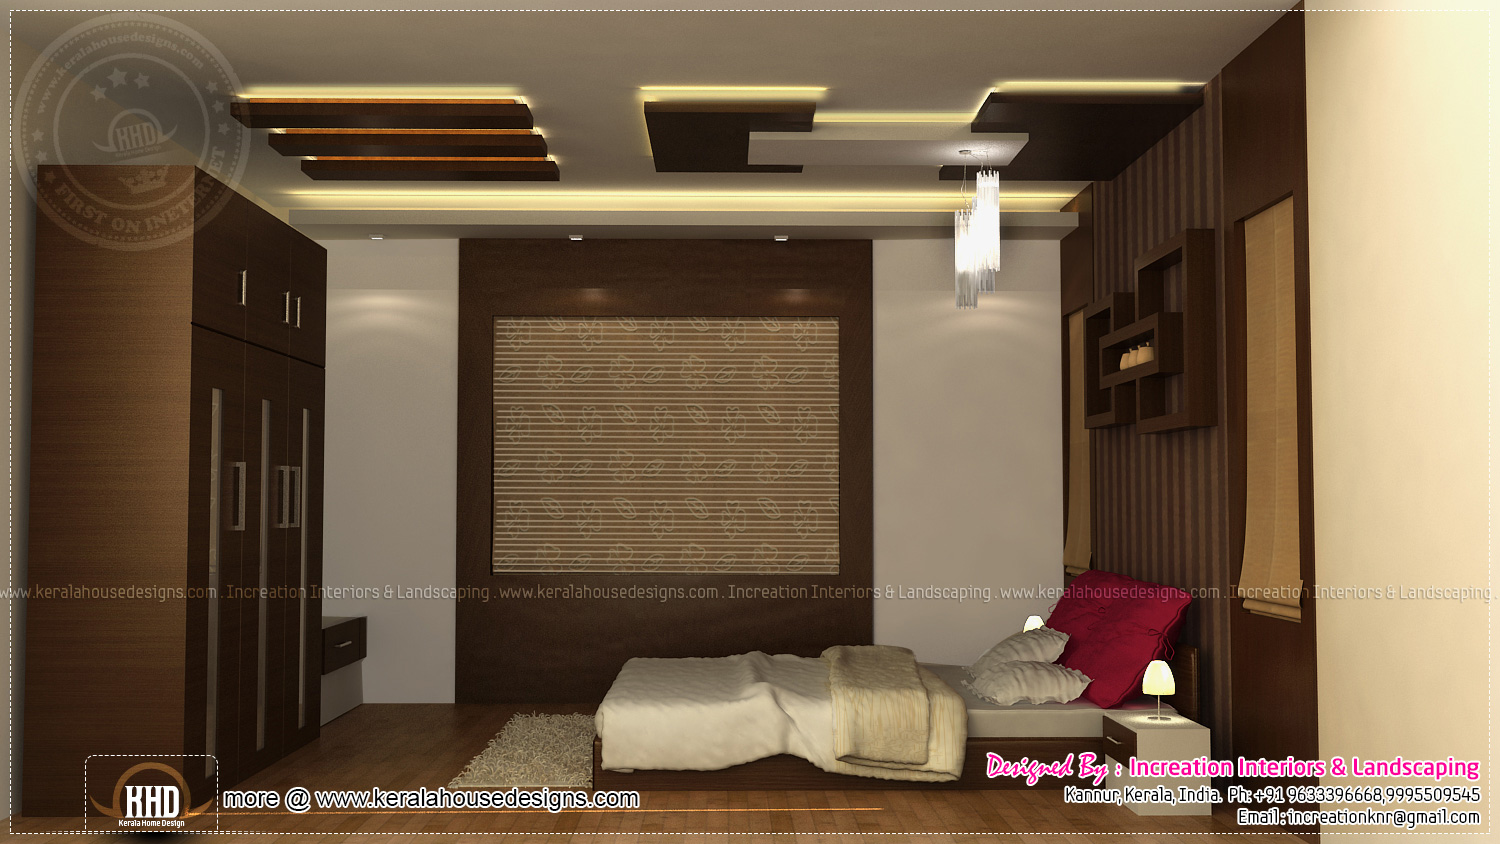 Interior designs by increation kannur kerala home for Photo gallery of interior designs